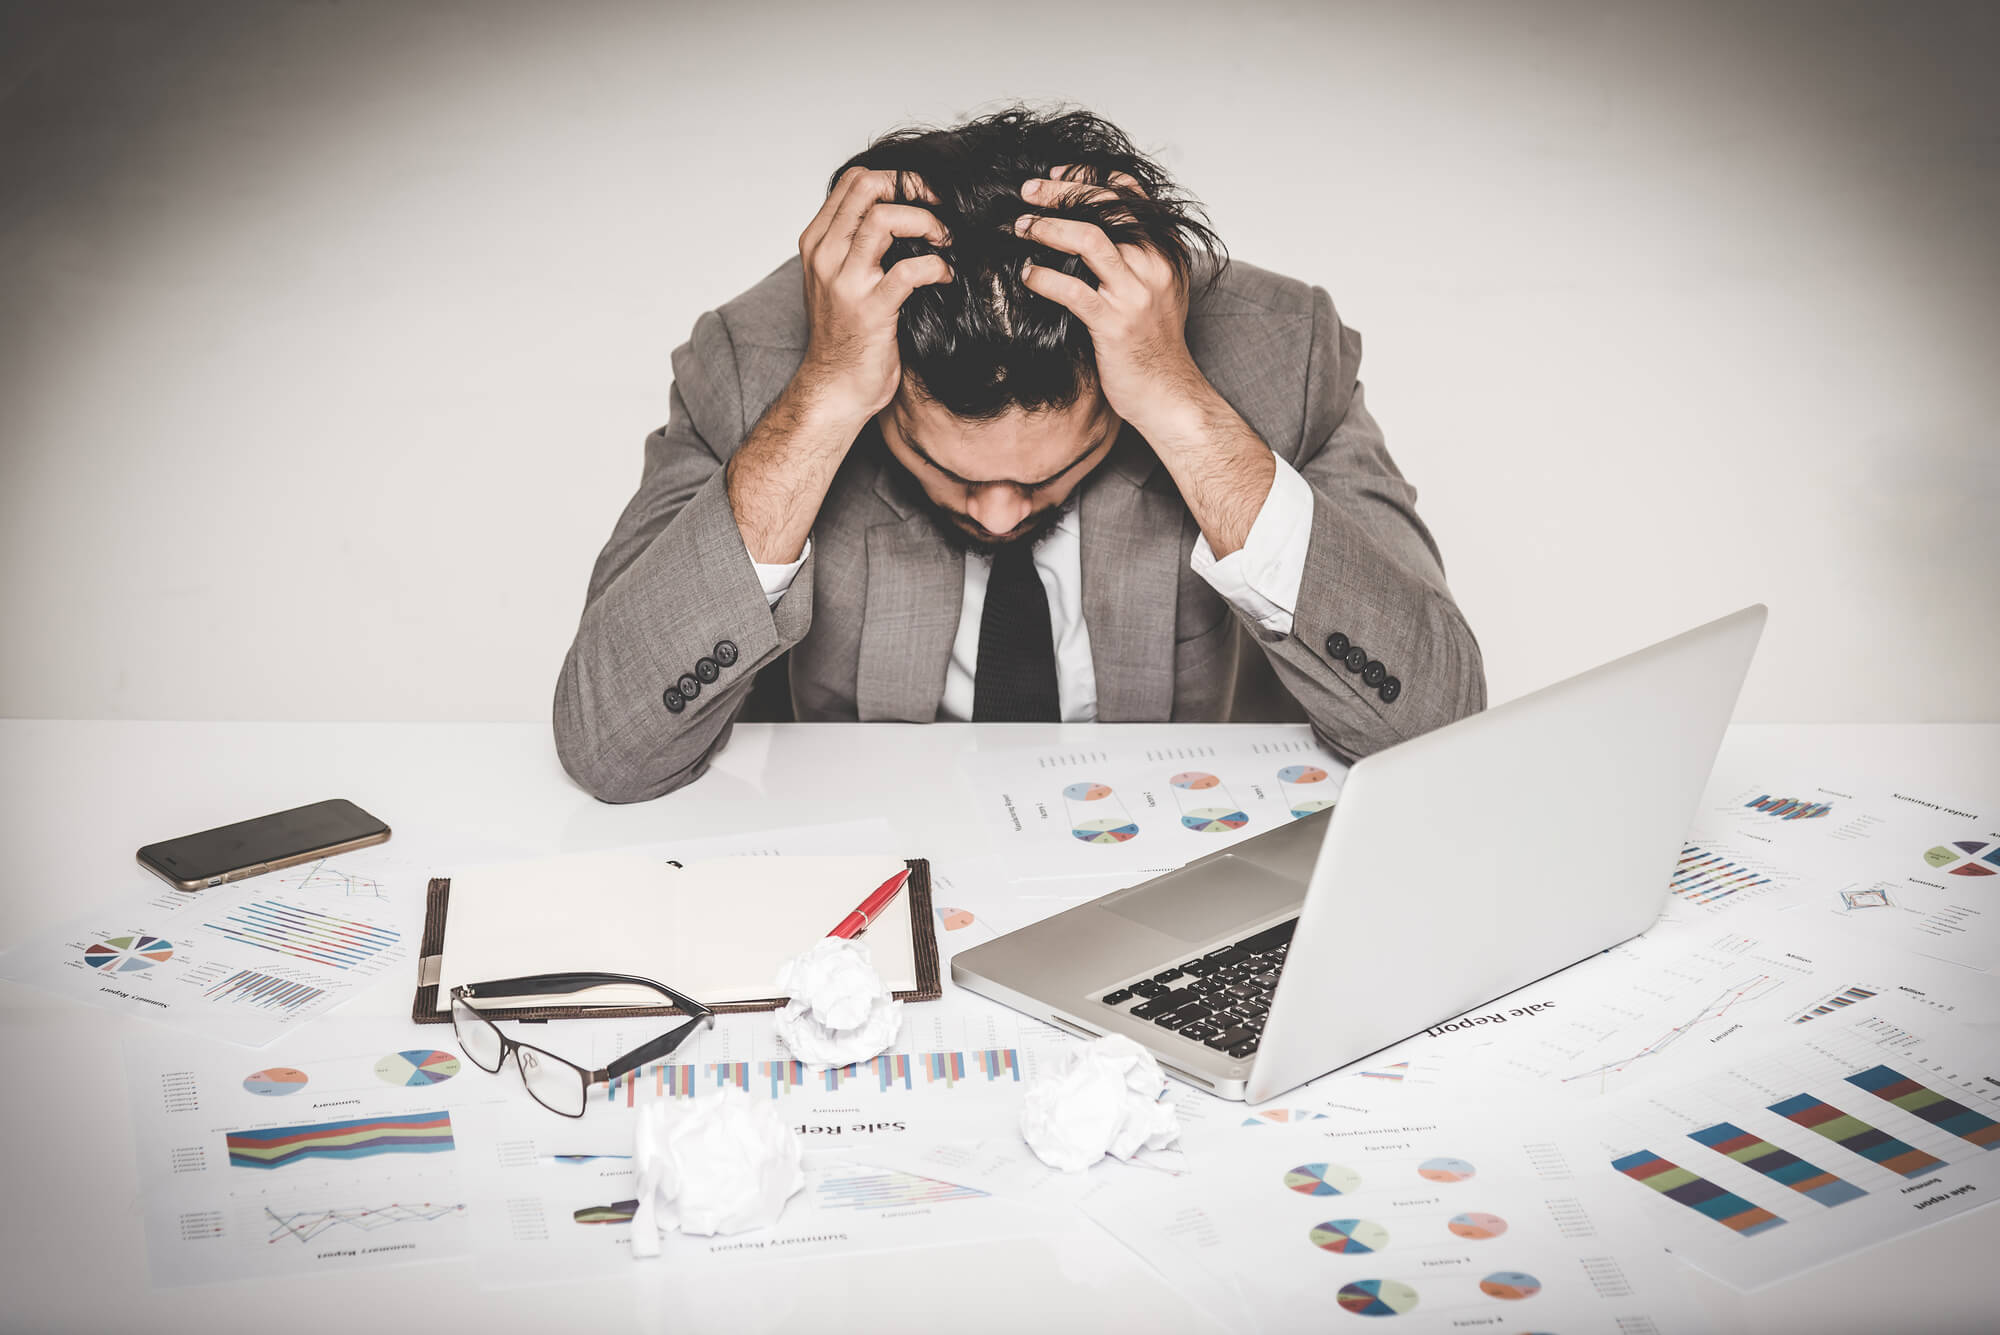 9 Reasons Why Most Businesses Fail In the First Year